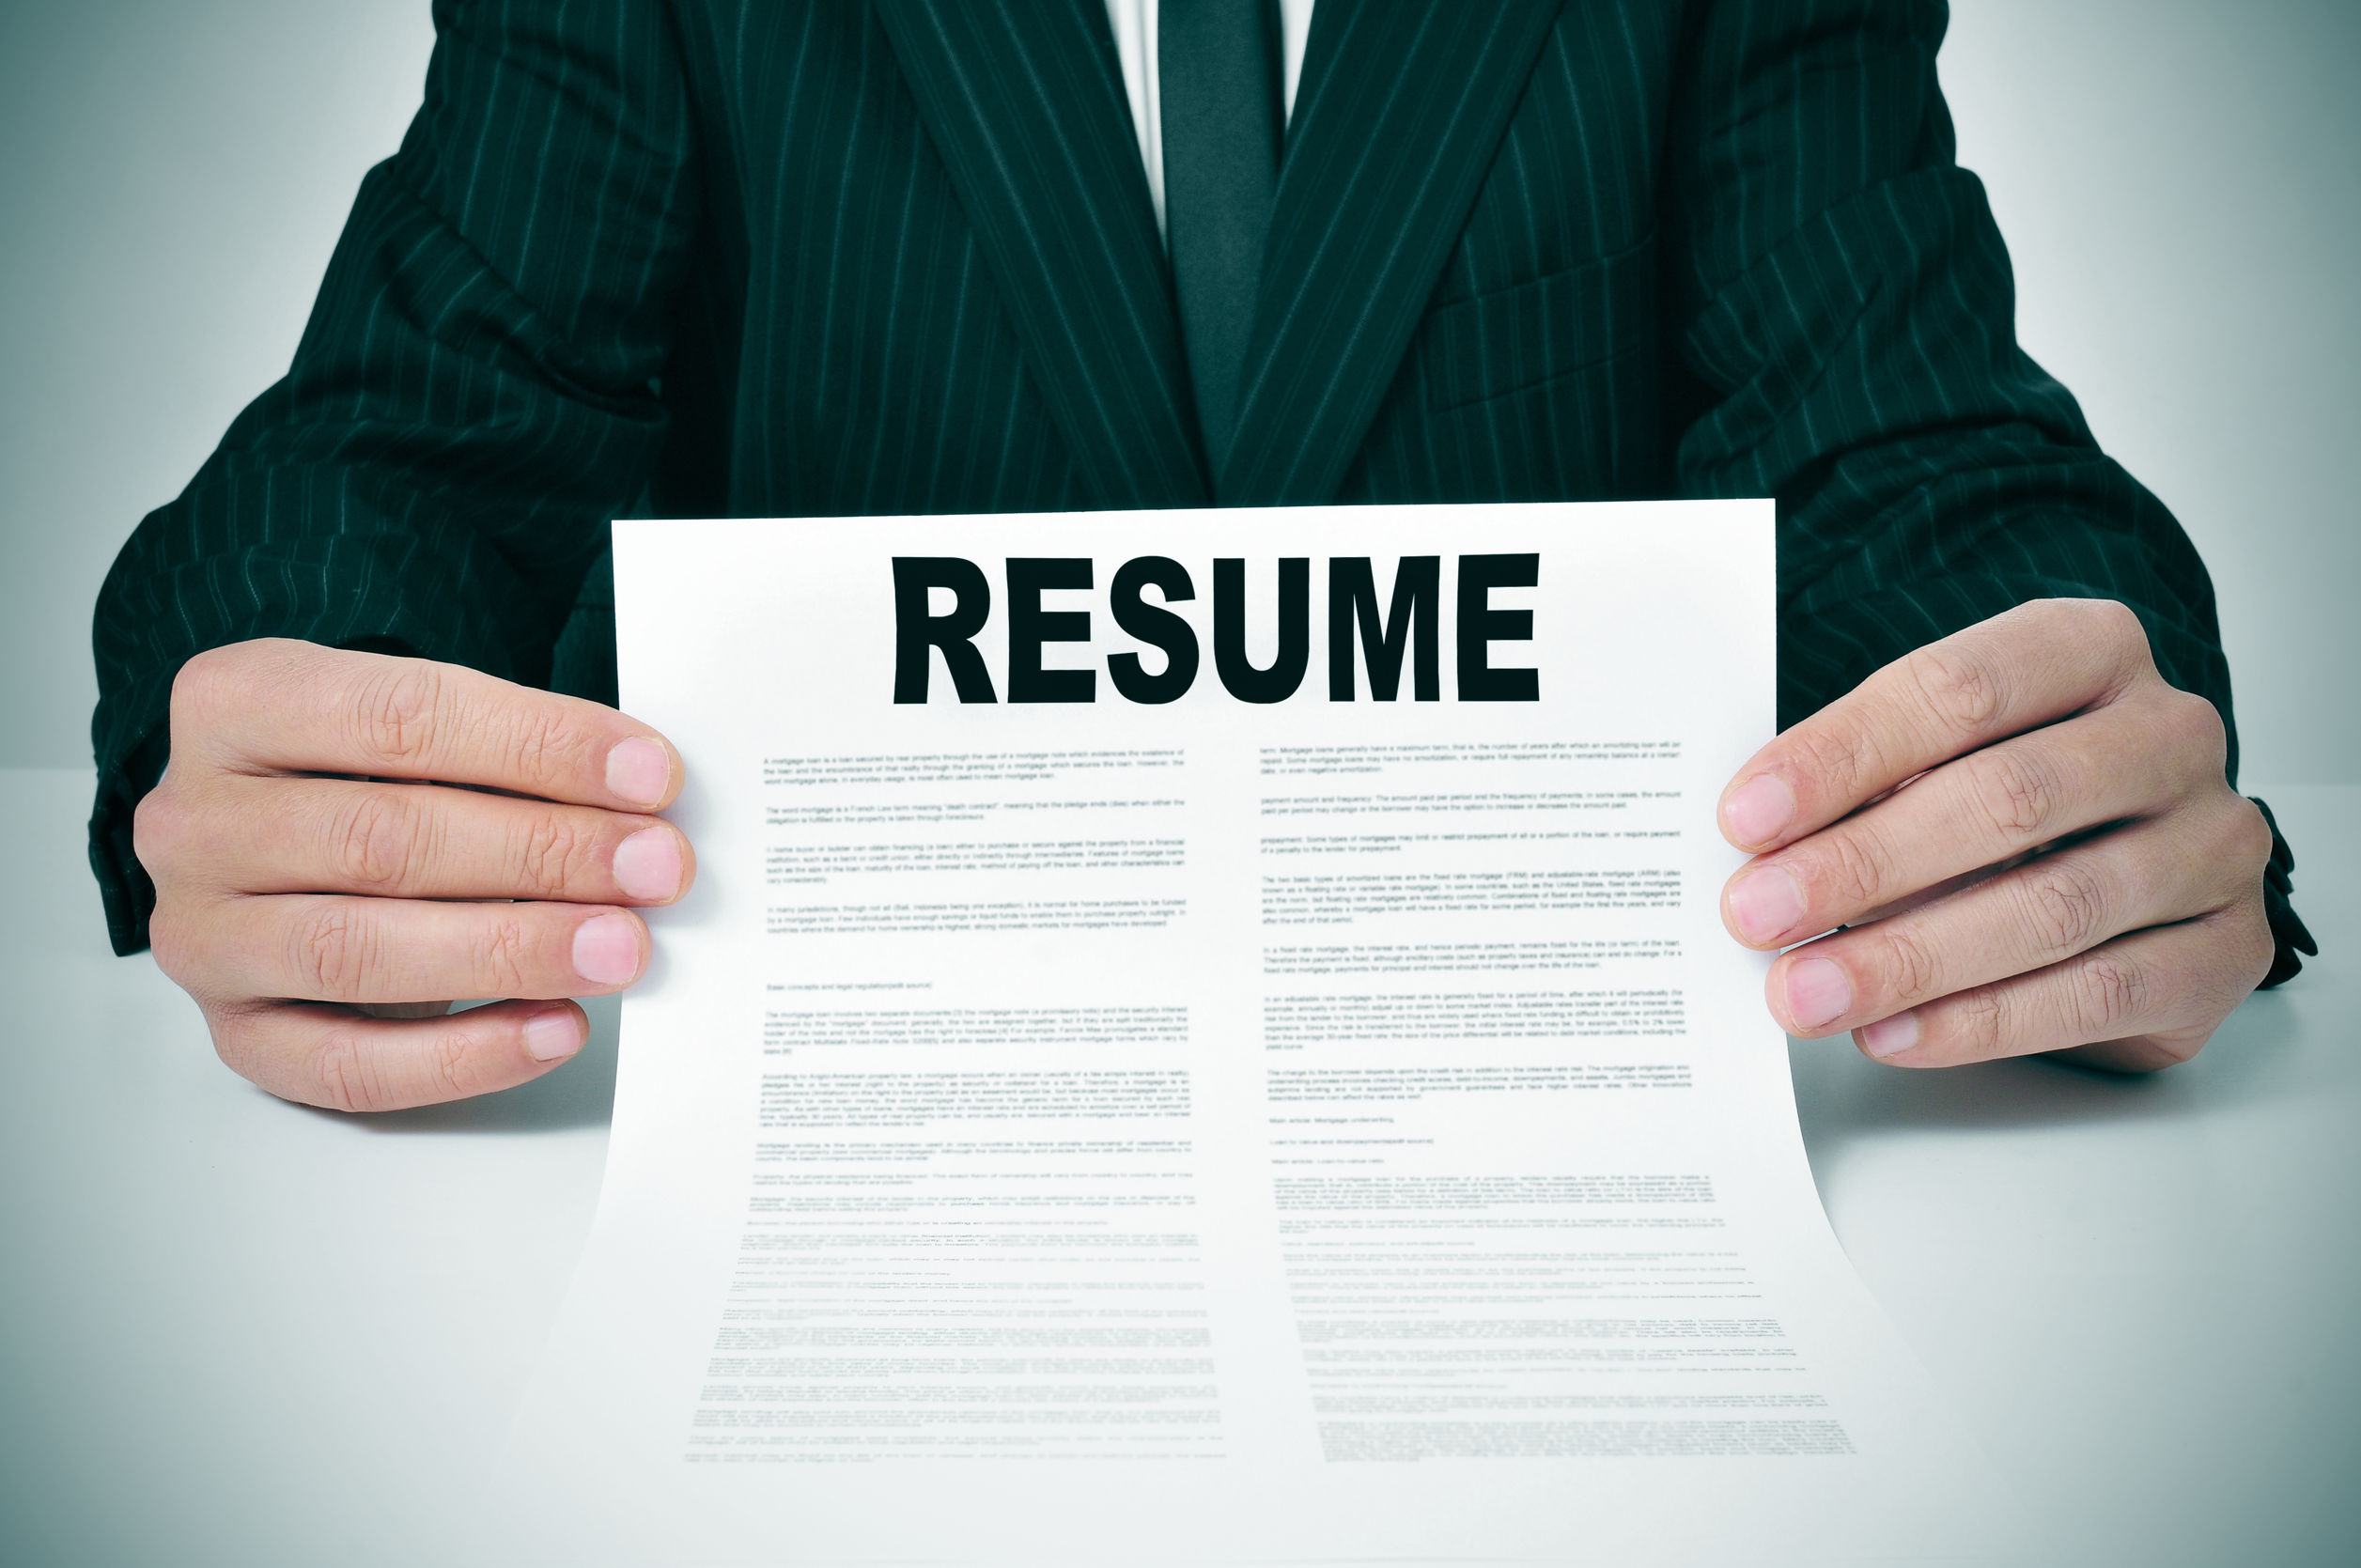 man-with-resume